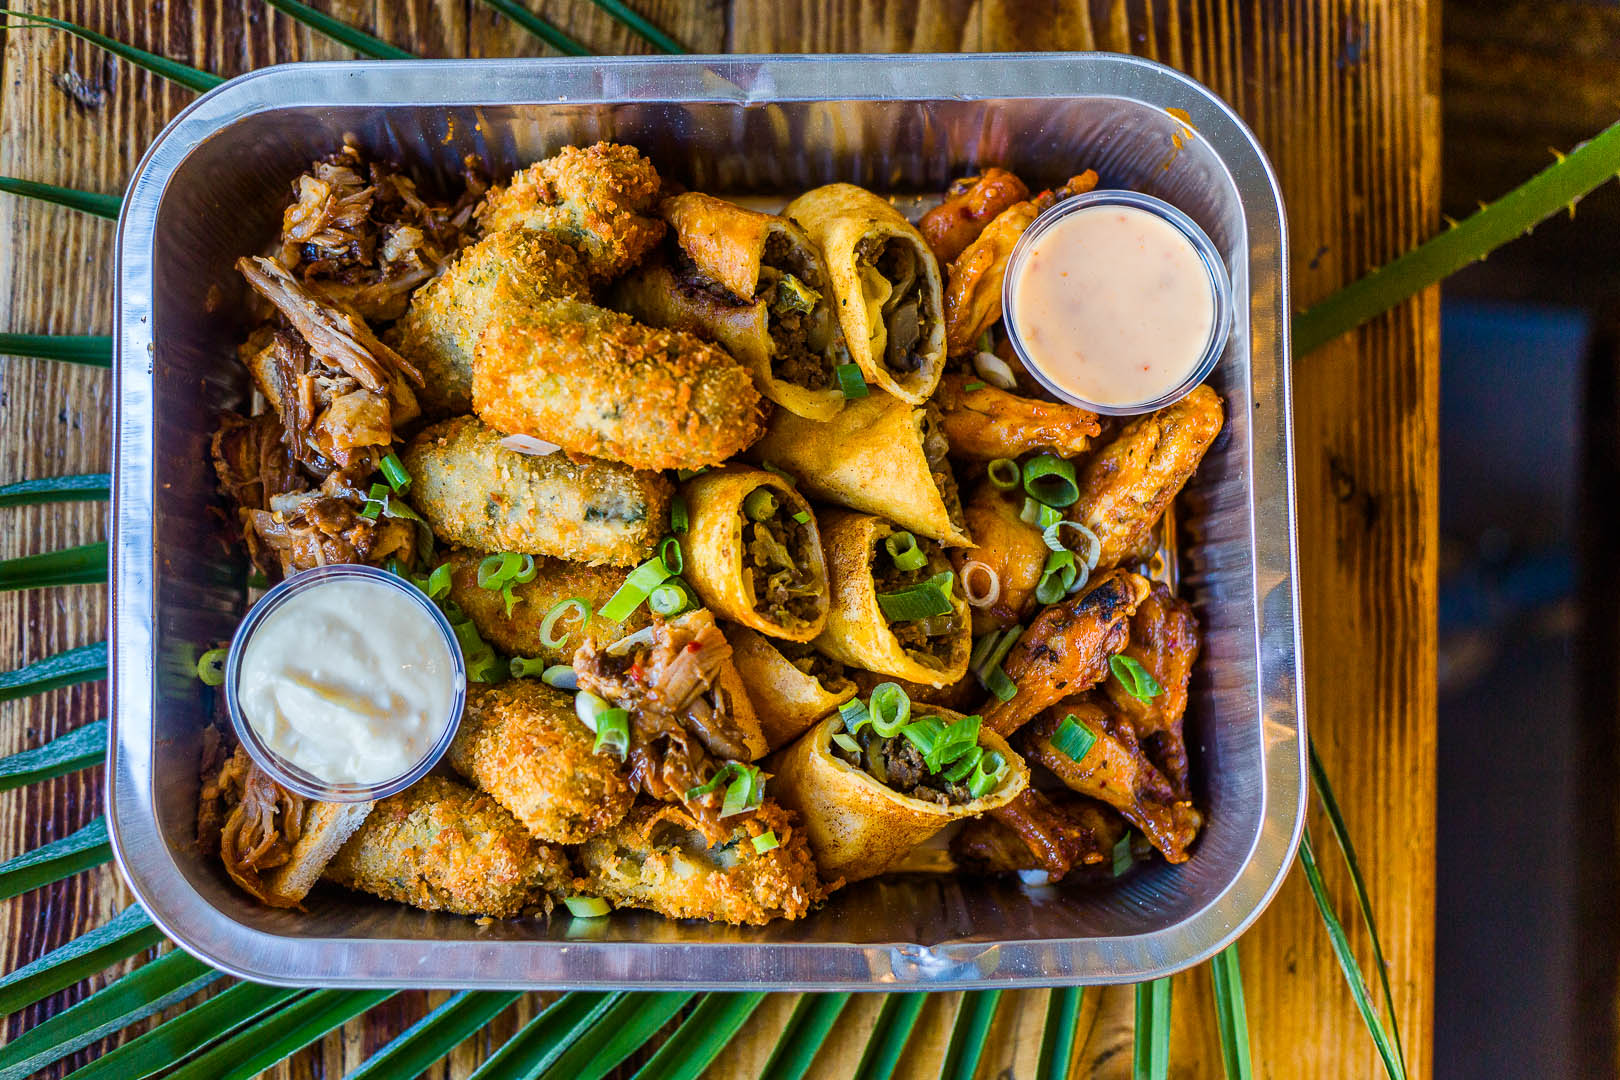 Food in a takeaway container | Personal Brand Photography